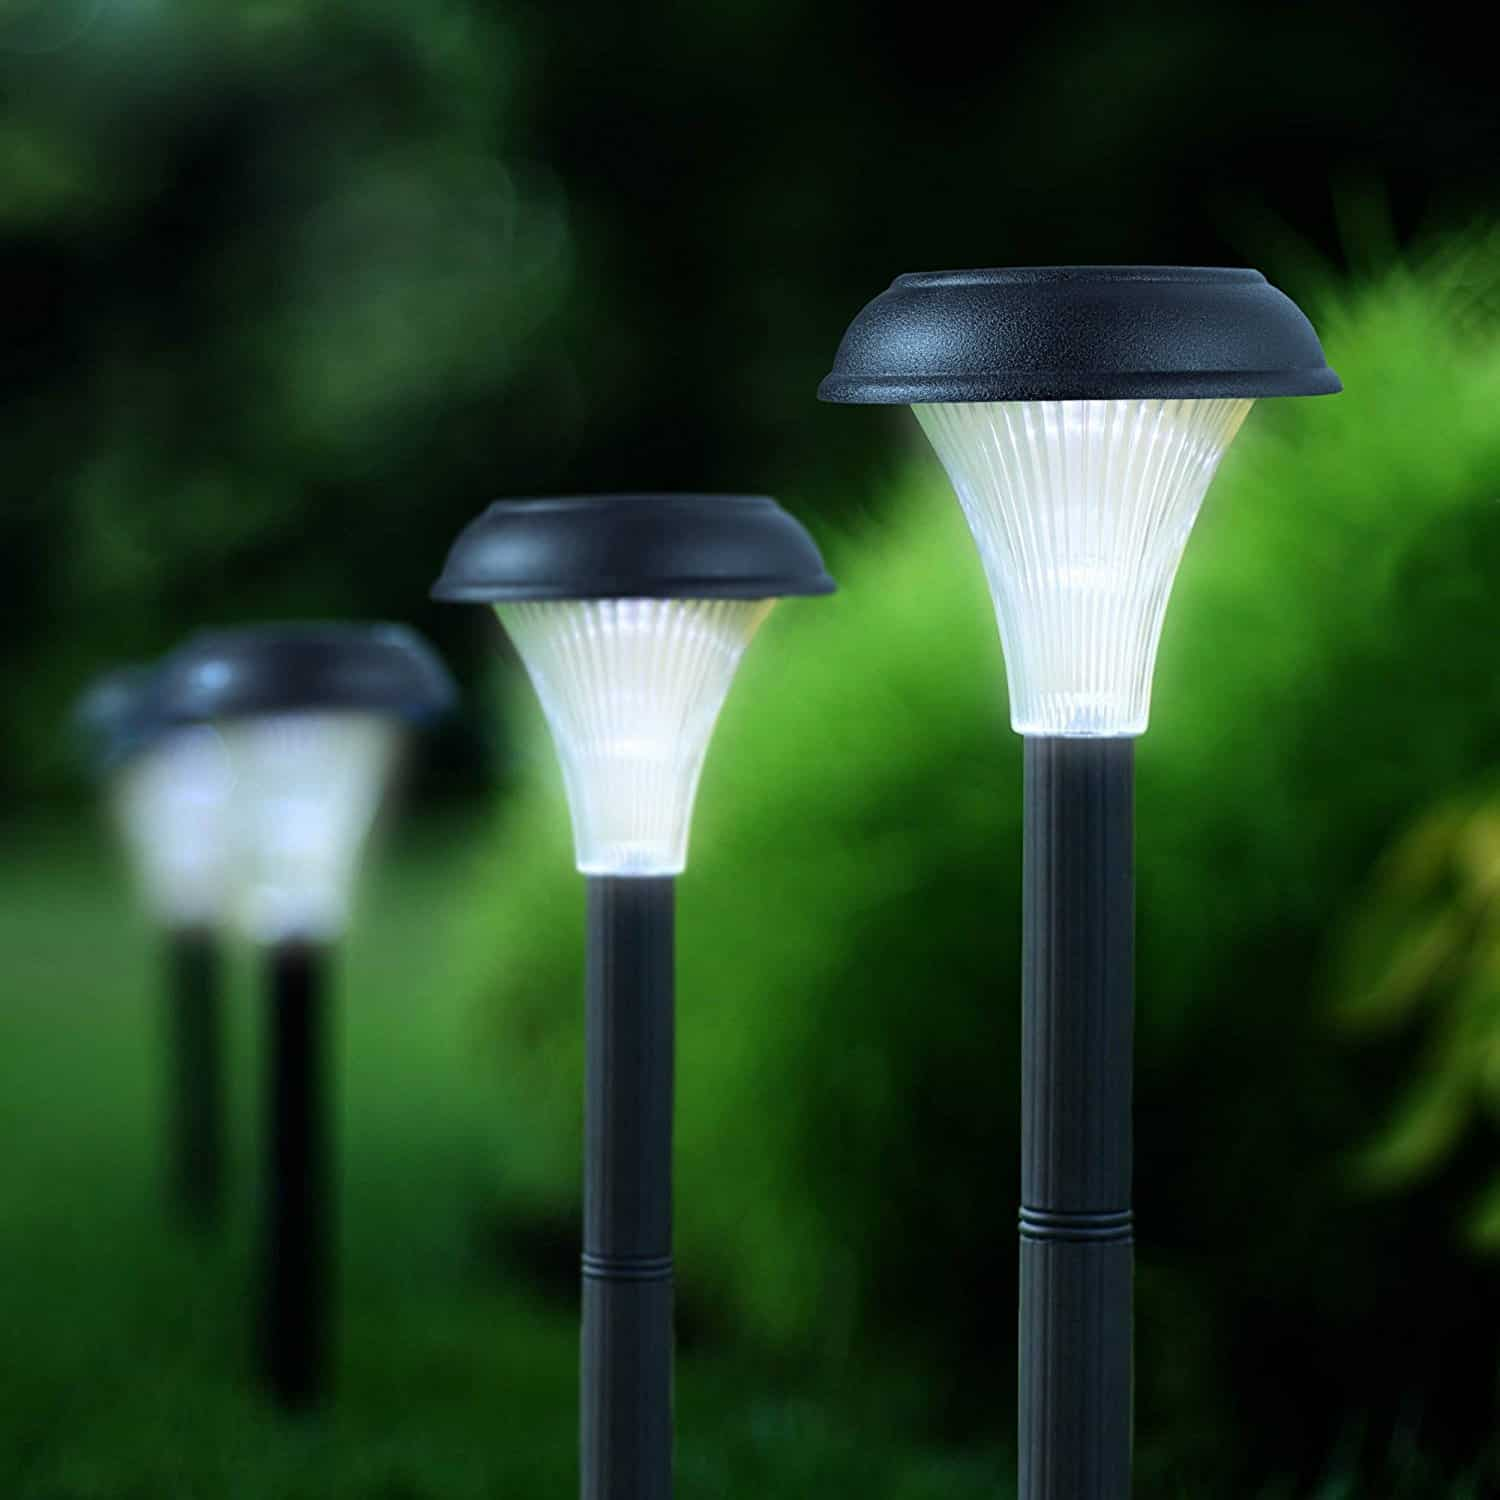 Outdoor Solar Garden Lights Best Solar Garden Lights 2019 Buying Guide Review Uk